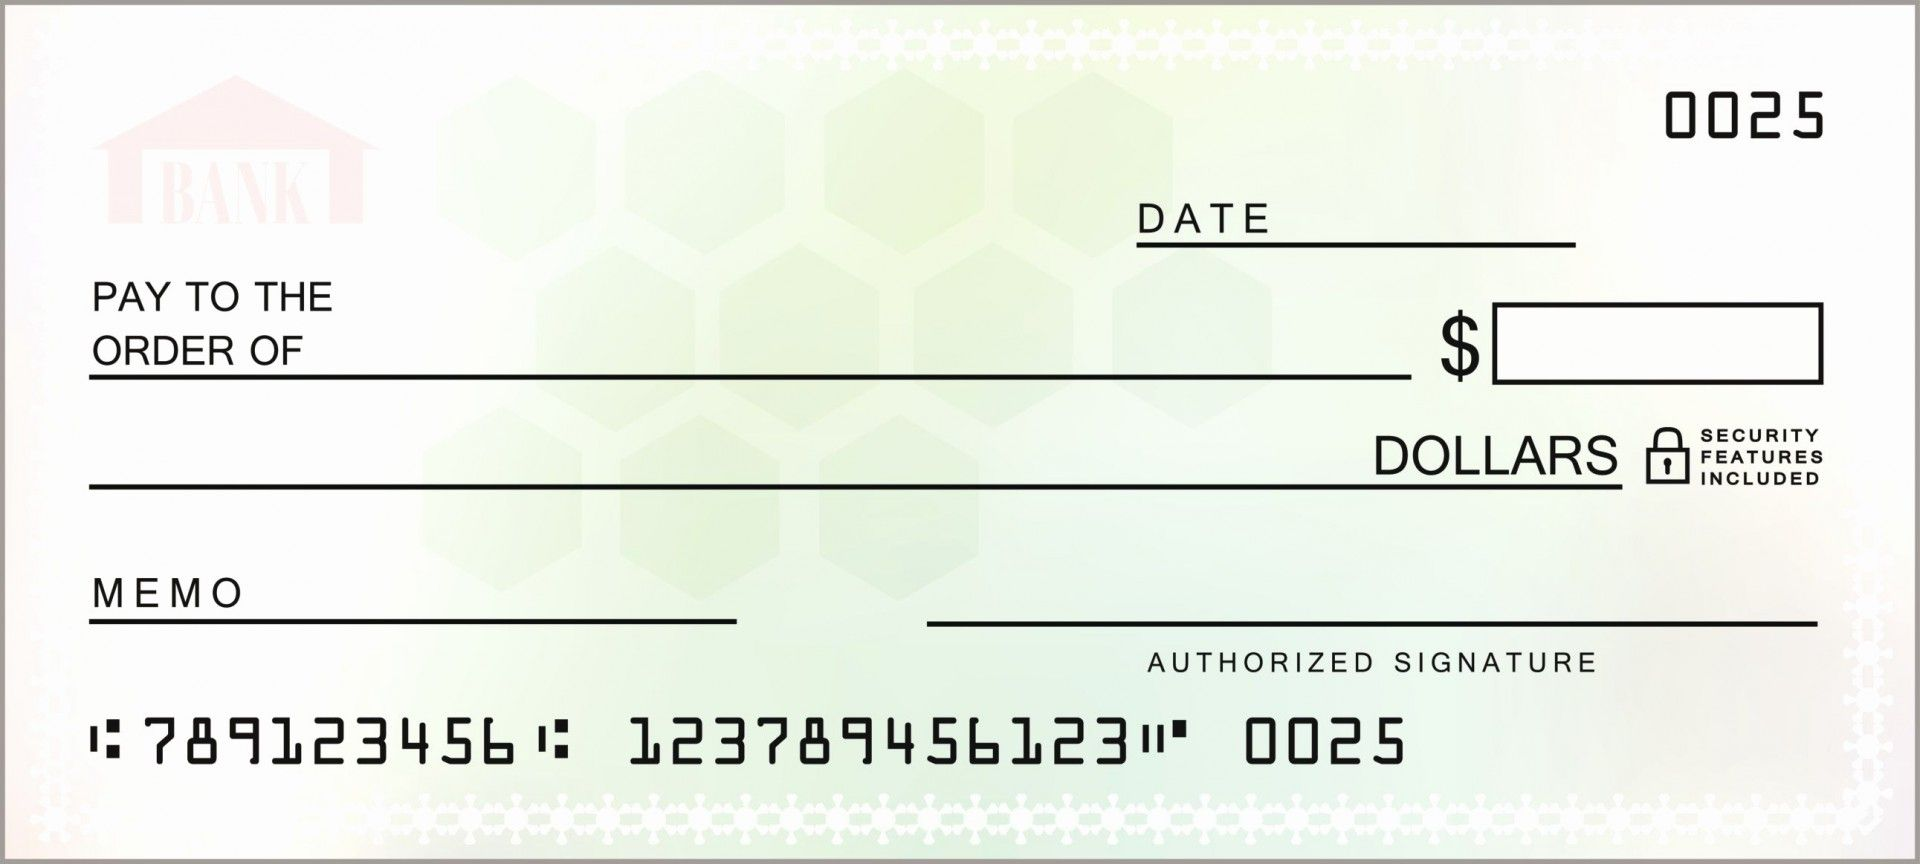 The Wonderful 017 Stock Photo Blank Cheque Check Template Illustration Pdf Inside Blank Cheque Template Uk Images Be In 2020 Blank Check Business Checks Teaching Teens